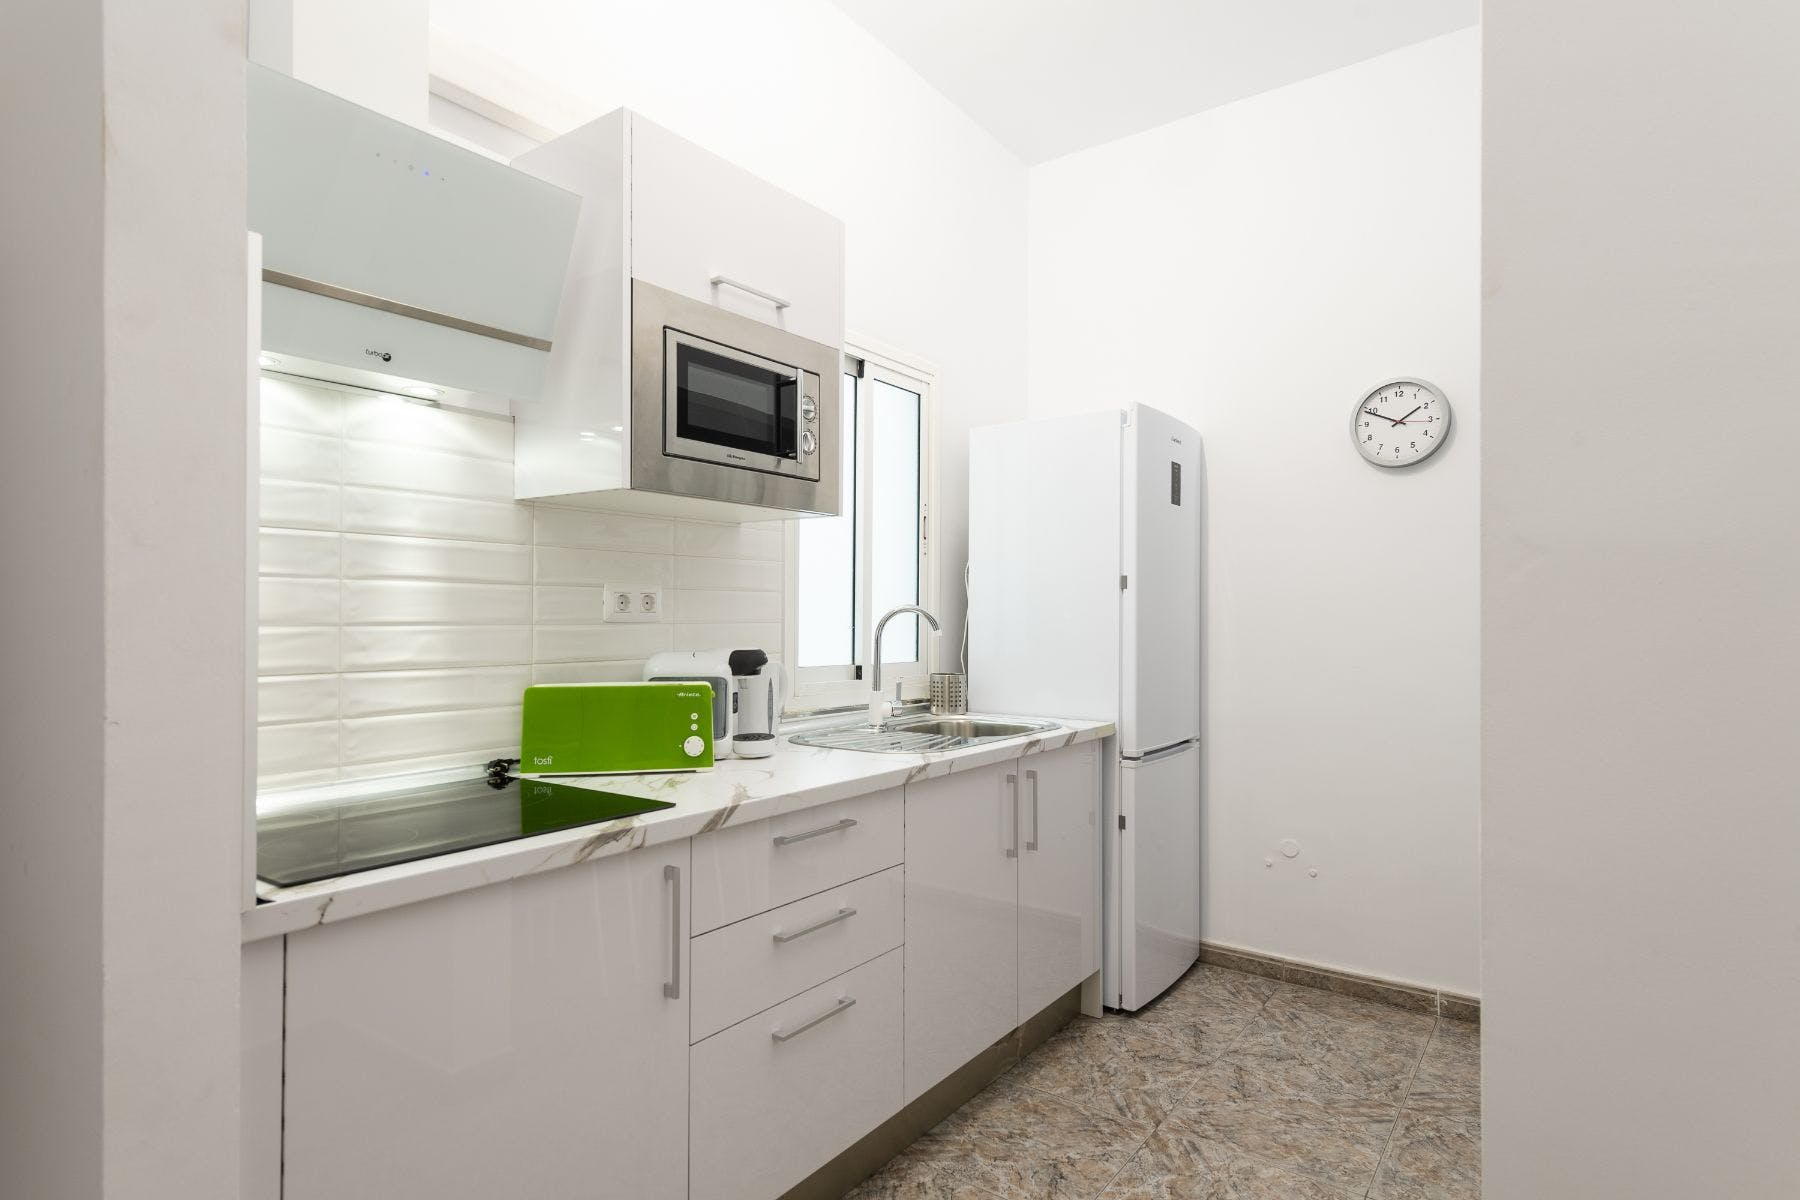 Relaxed Modern Apt. - Incl. Coworking + Rooftop Deck